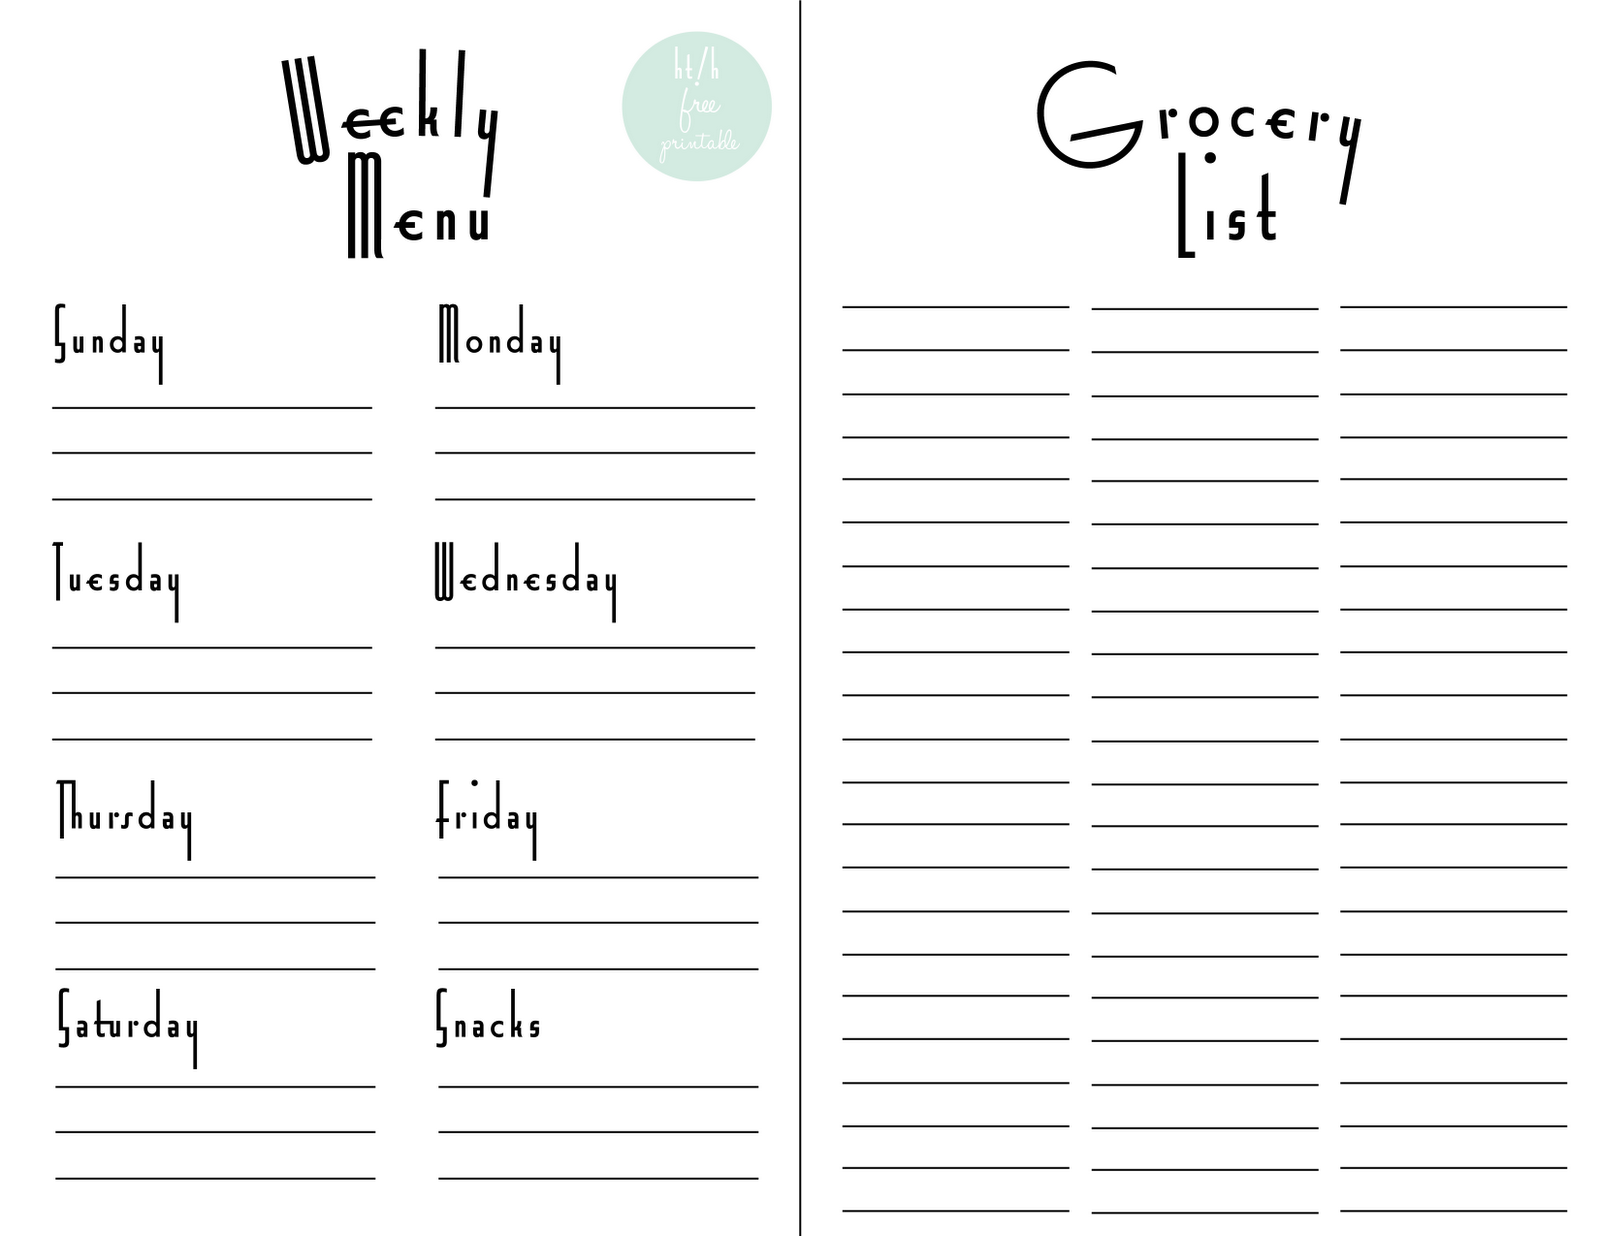 printable menu planner with grocery list